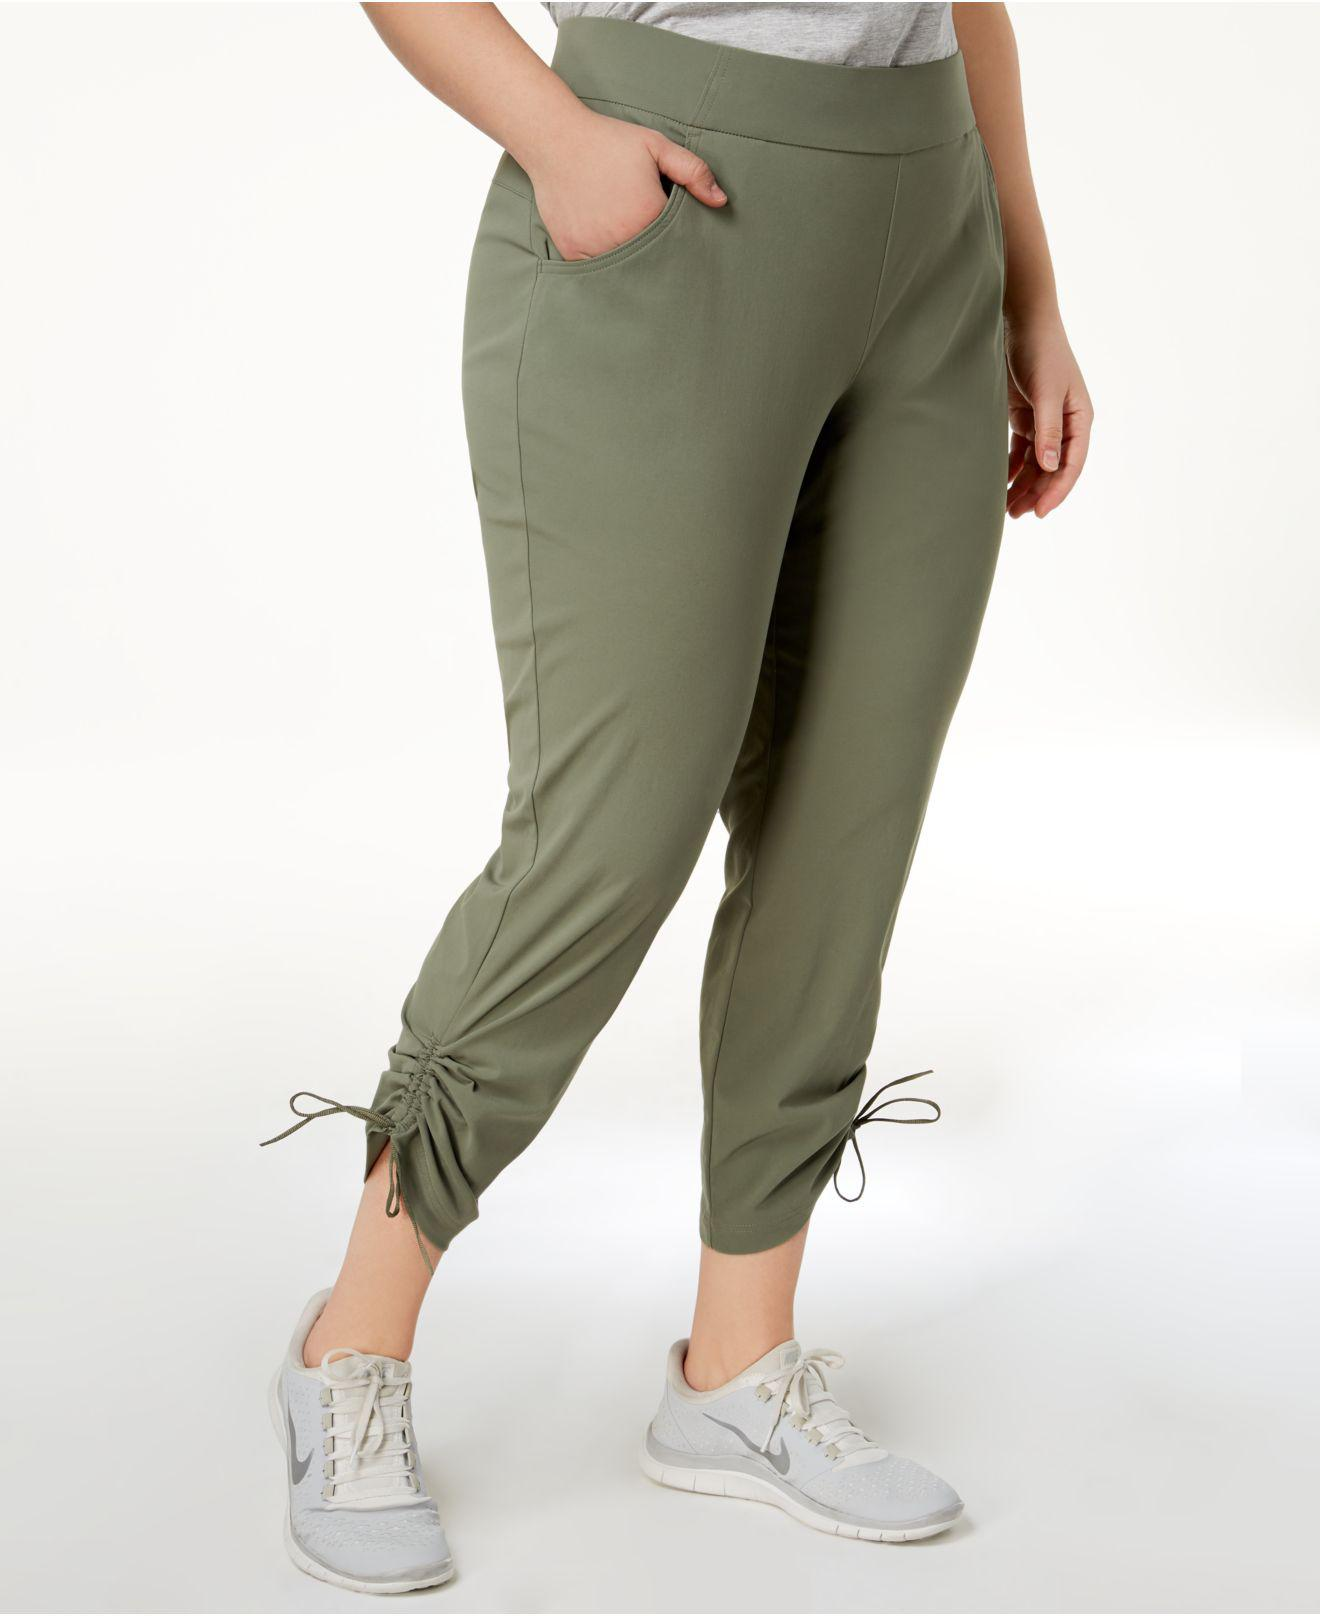 c3ec794d695 Lyst - Columbia Plus Size Anytime Casualtm Ankle Pants in Green